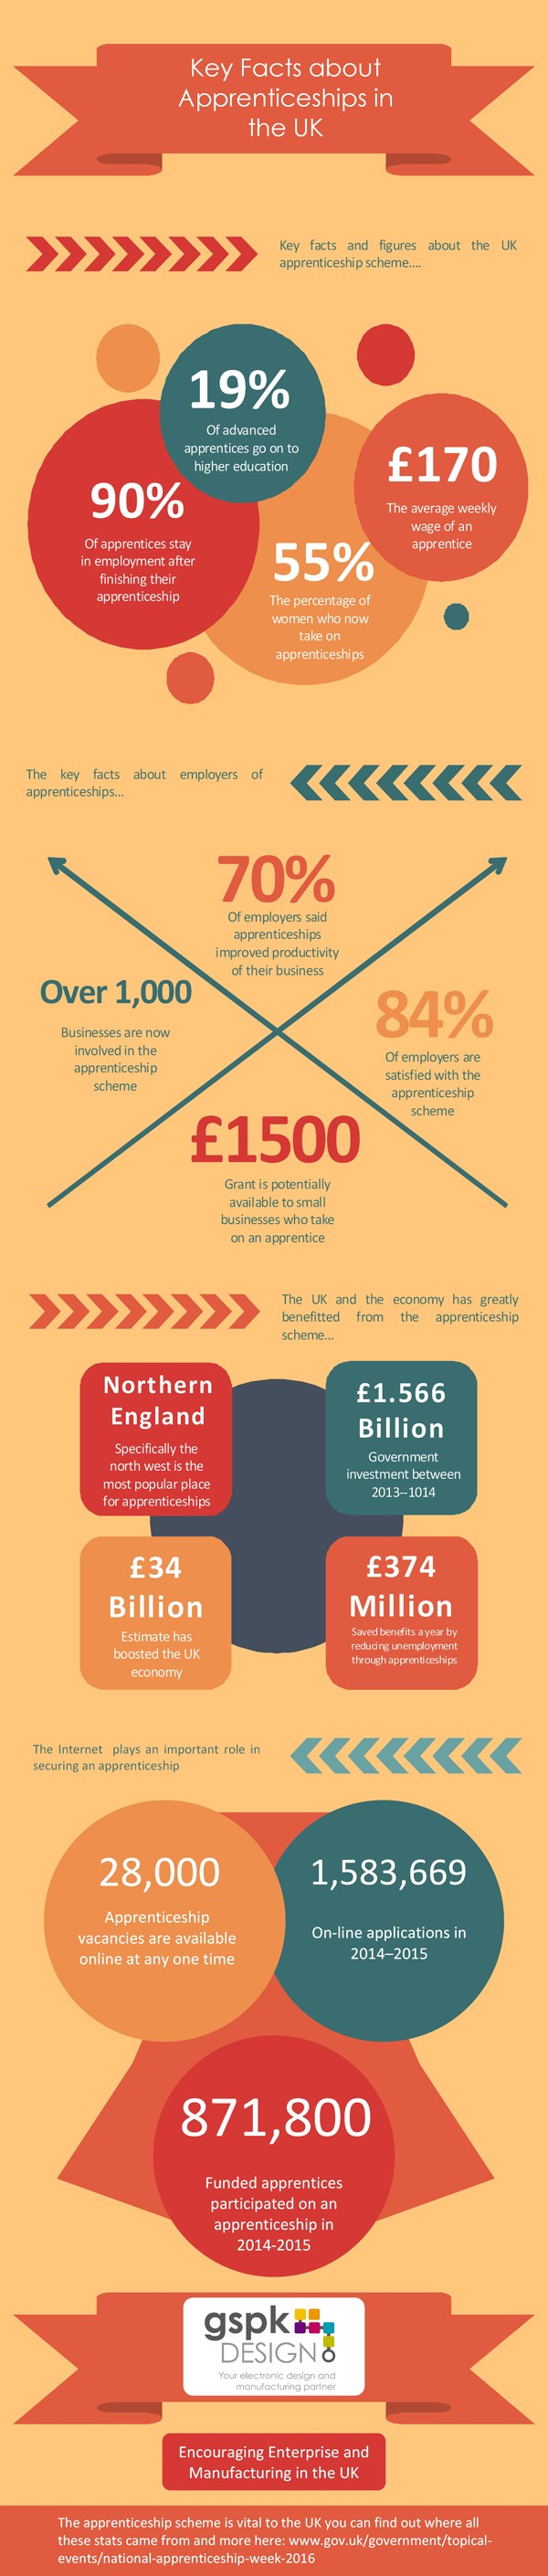 National Apprenticeship week 2016 Infographic by GSPK Design Ltd